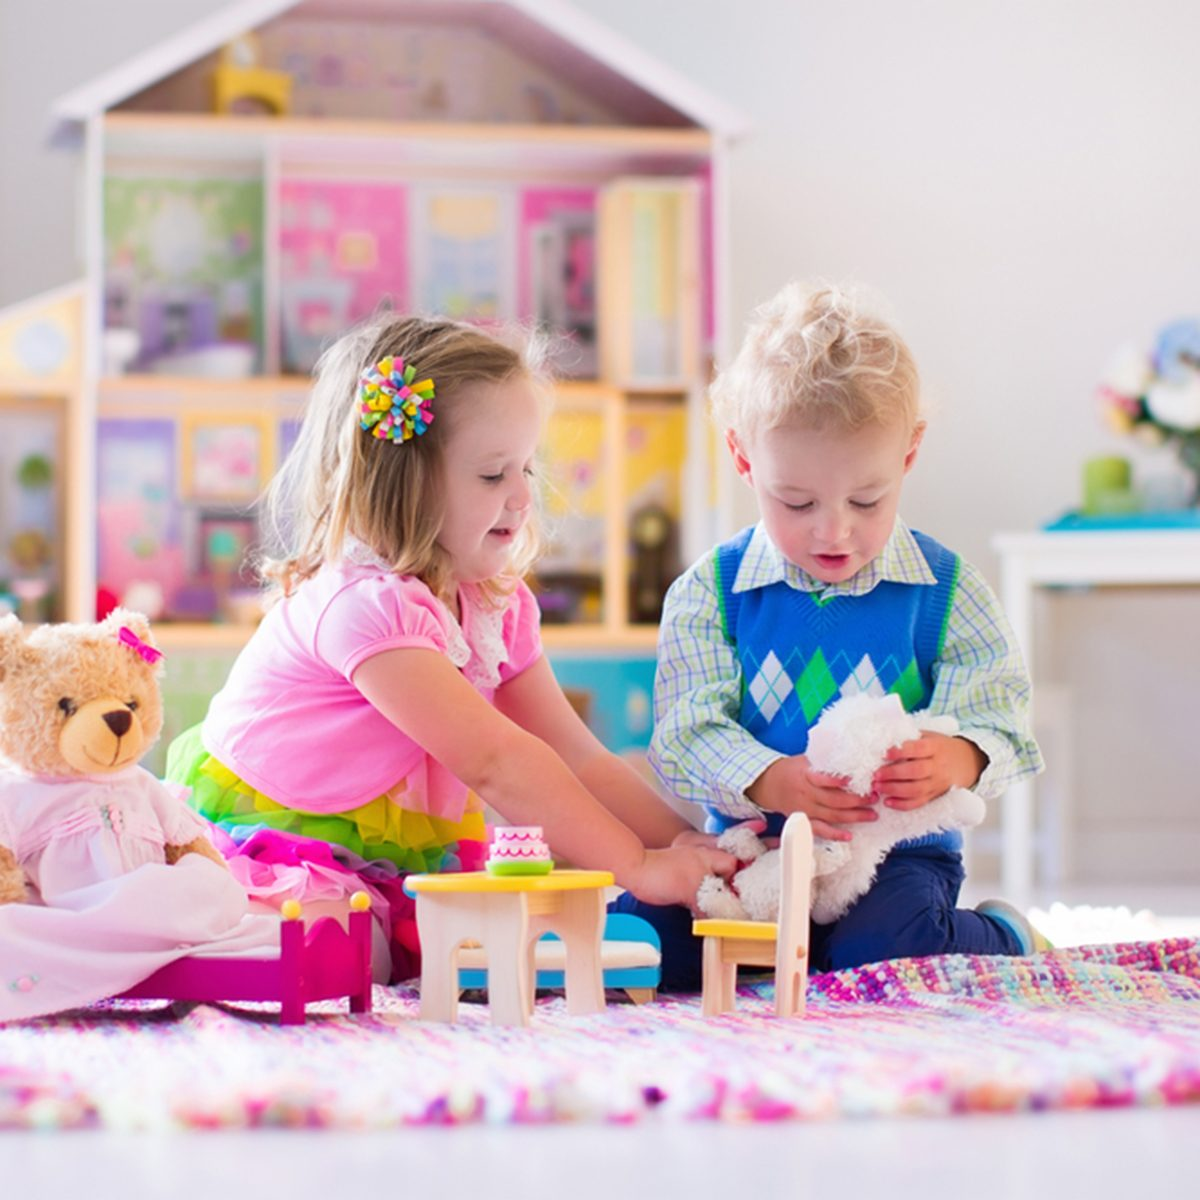 Kids playing with doll house and stuffed animal toys.